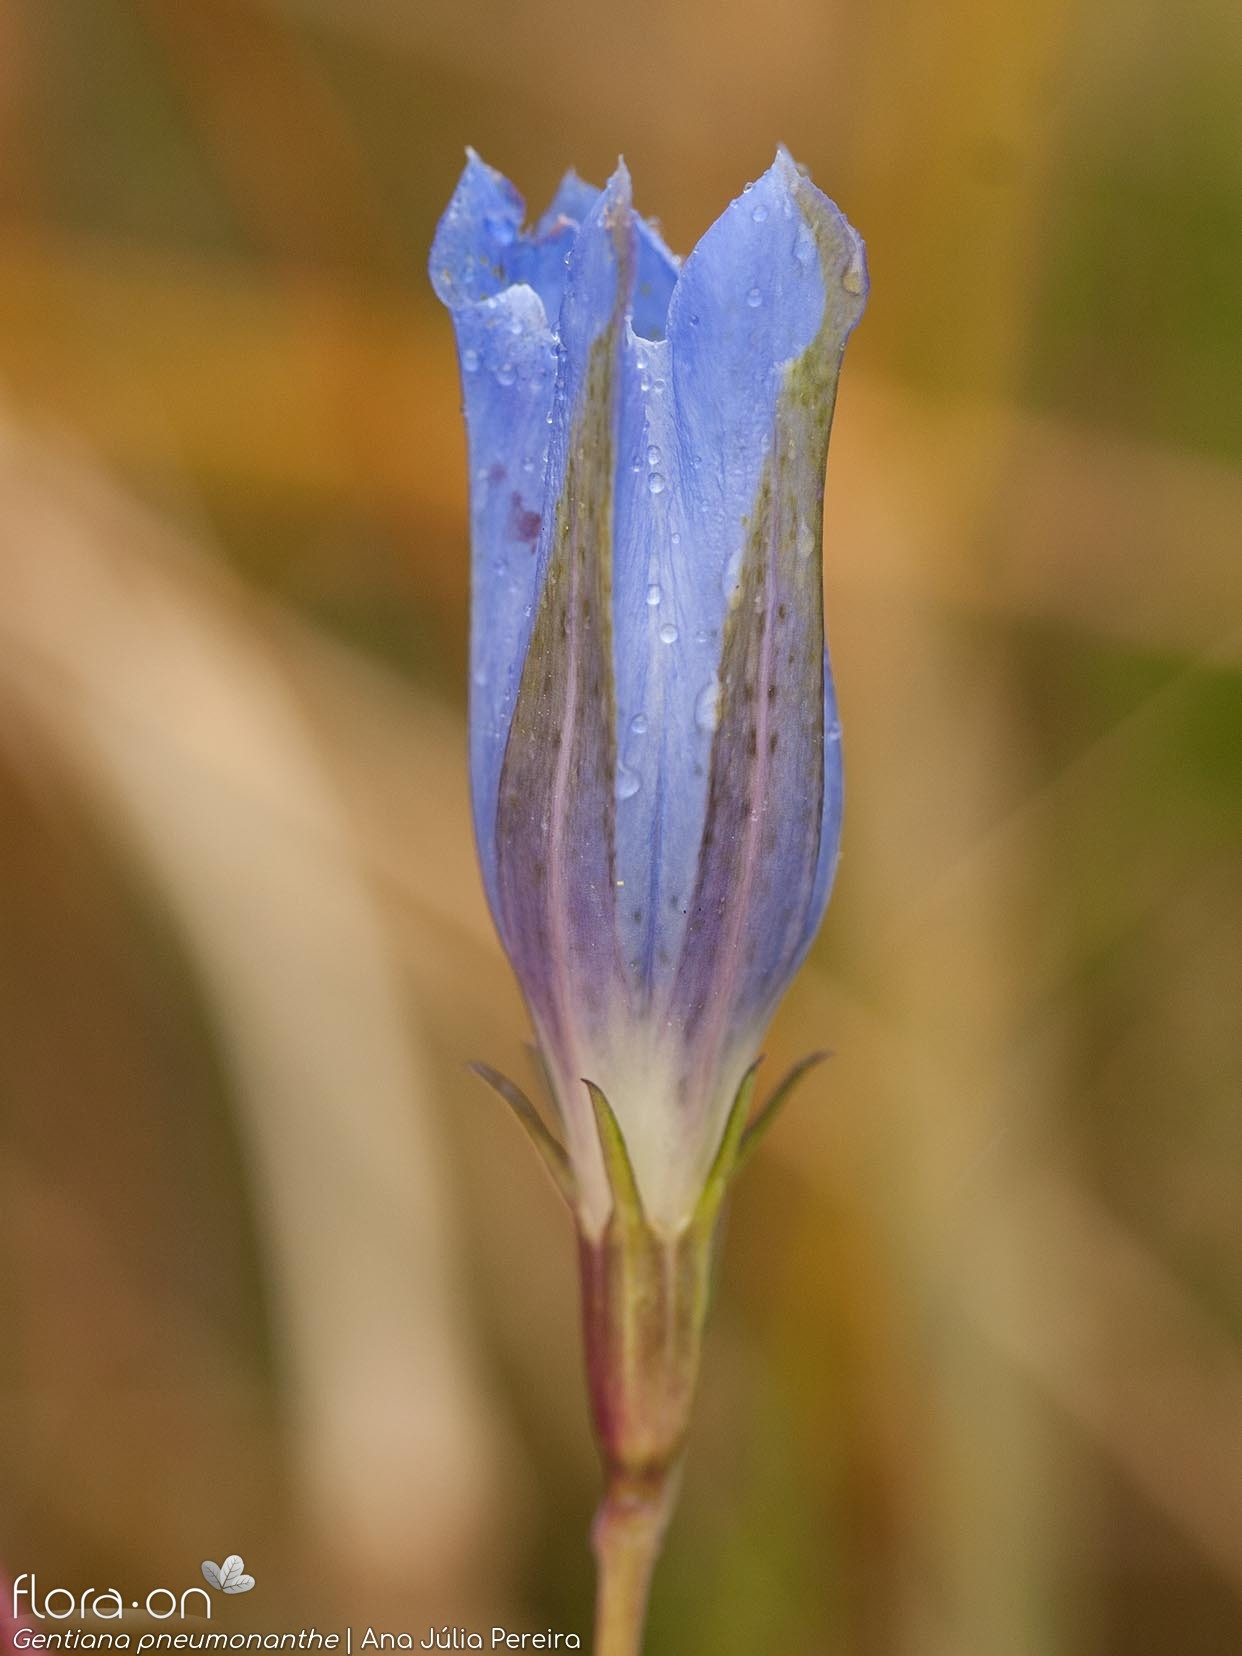 Gentiana pneumonanthe - Flor (close-up) | Ana Júlia Pereira; CC BY-NC 4.0